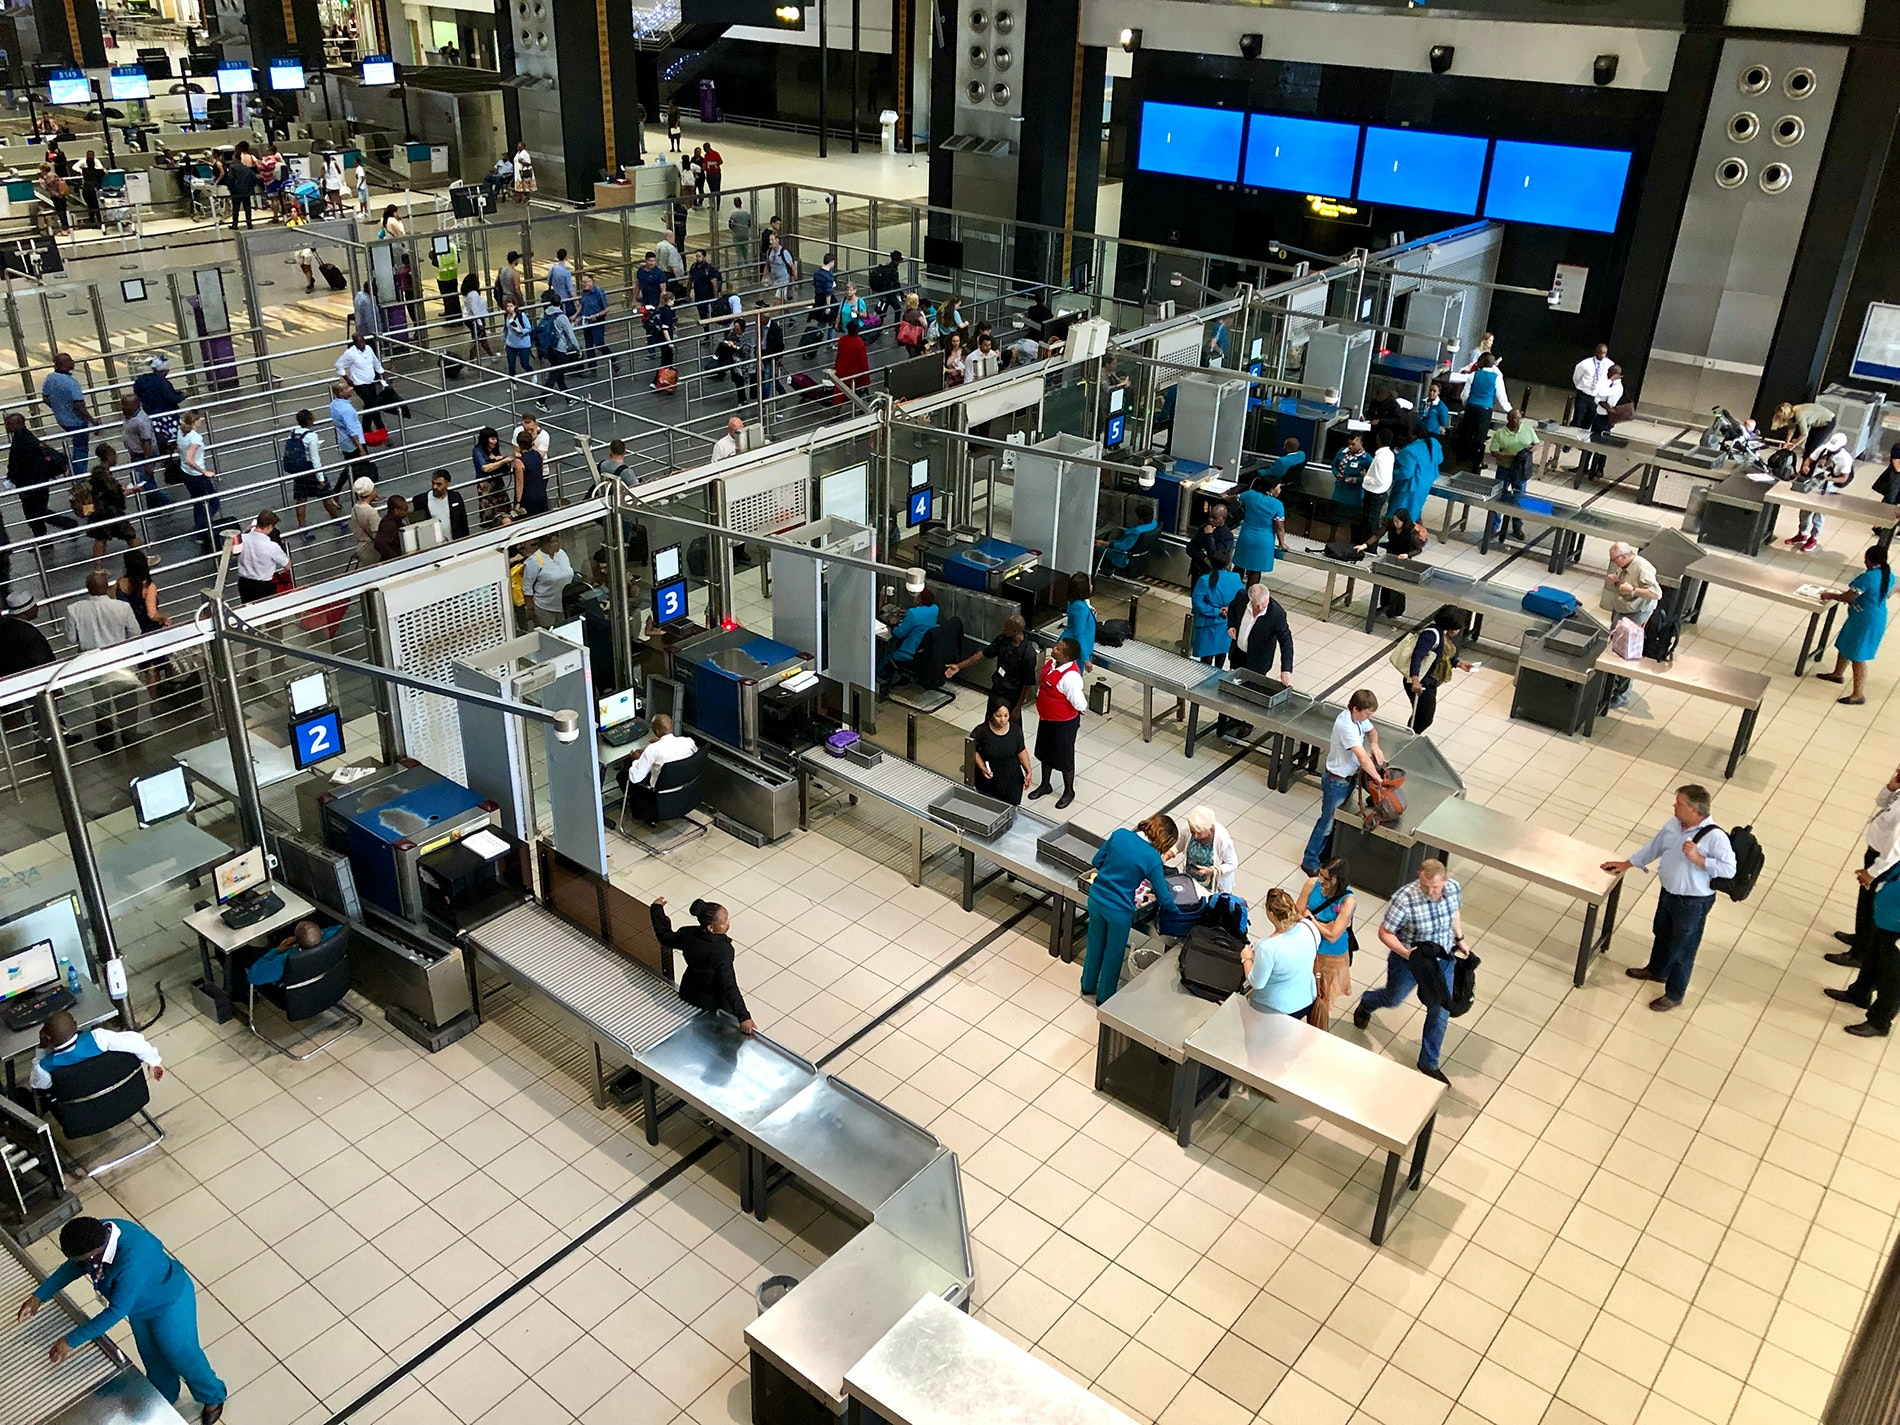 TSA PreCheck is designed to help registered travelers get through airport security lanes faster.